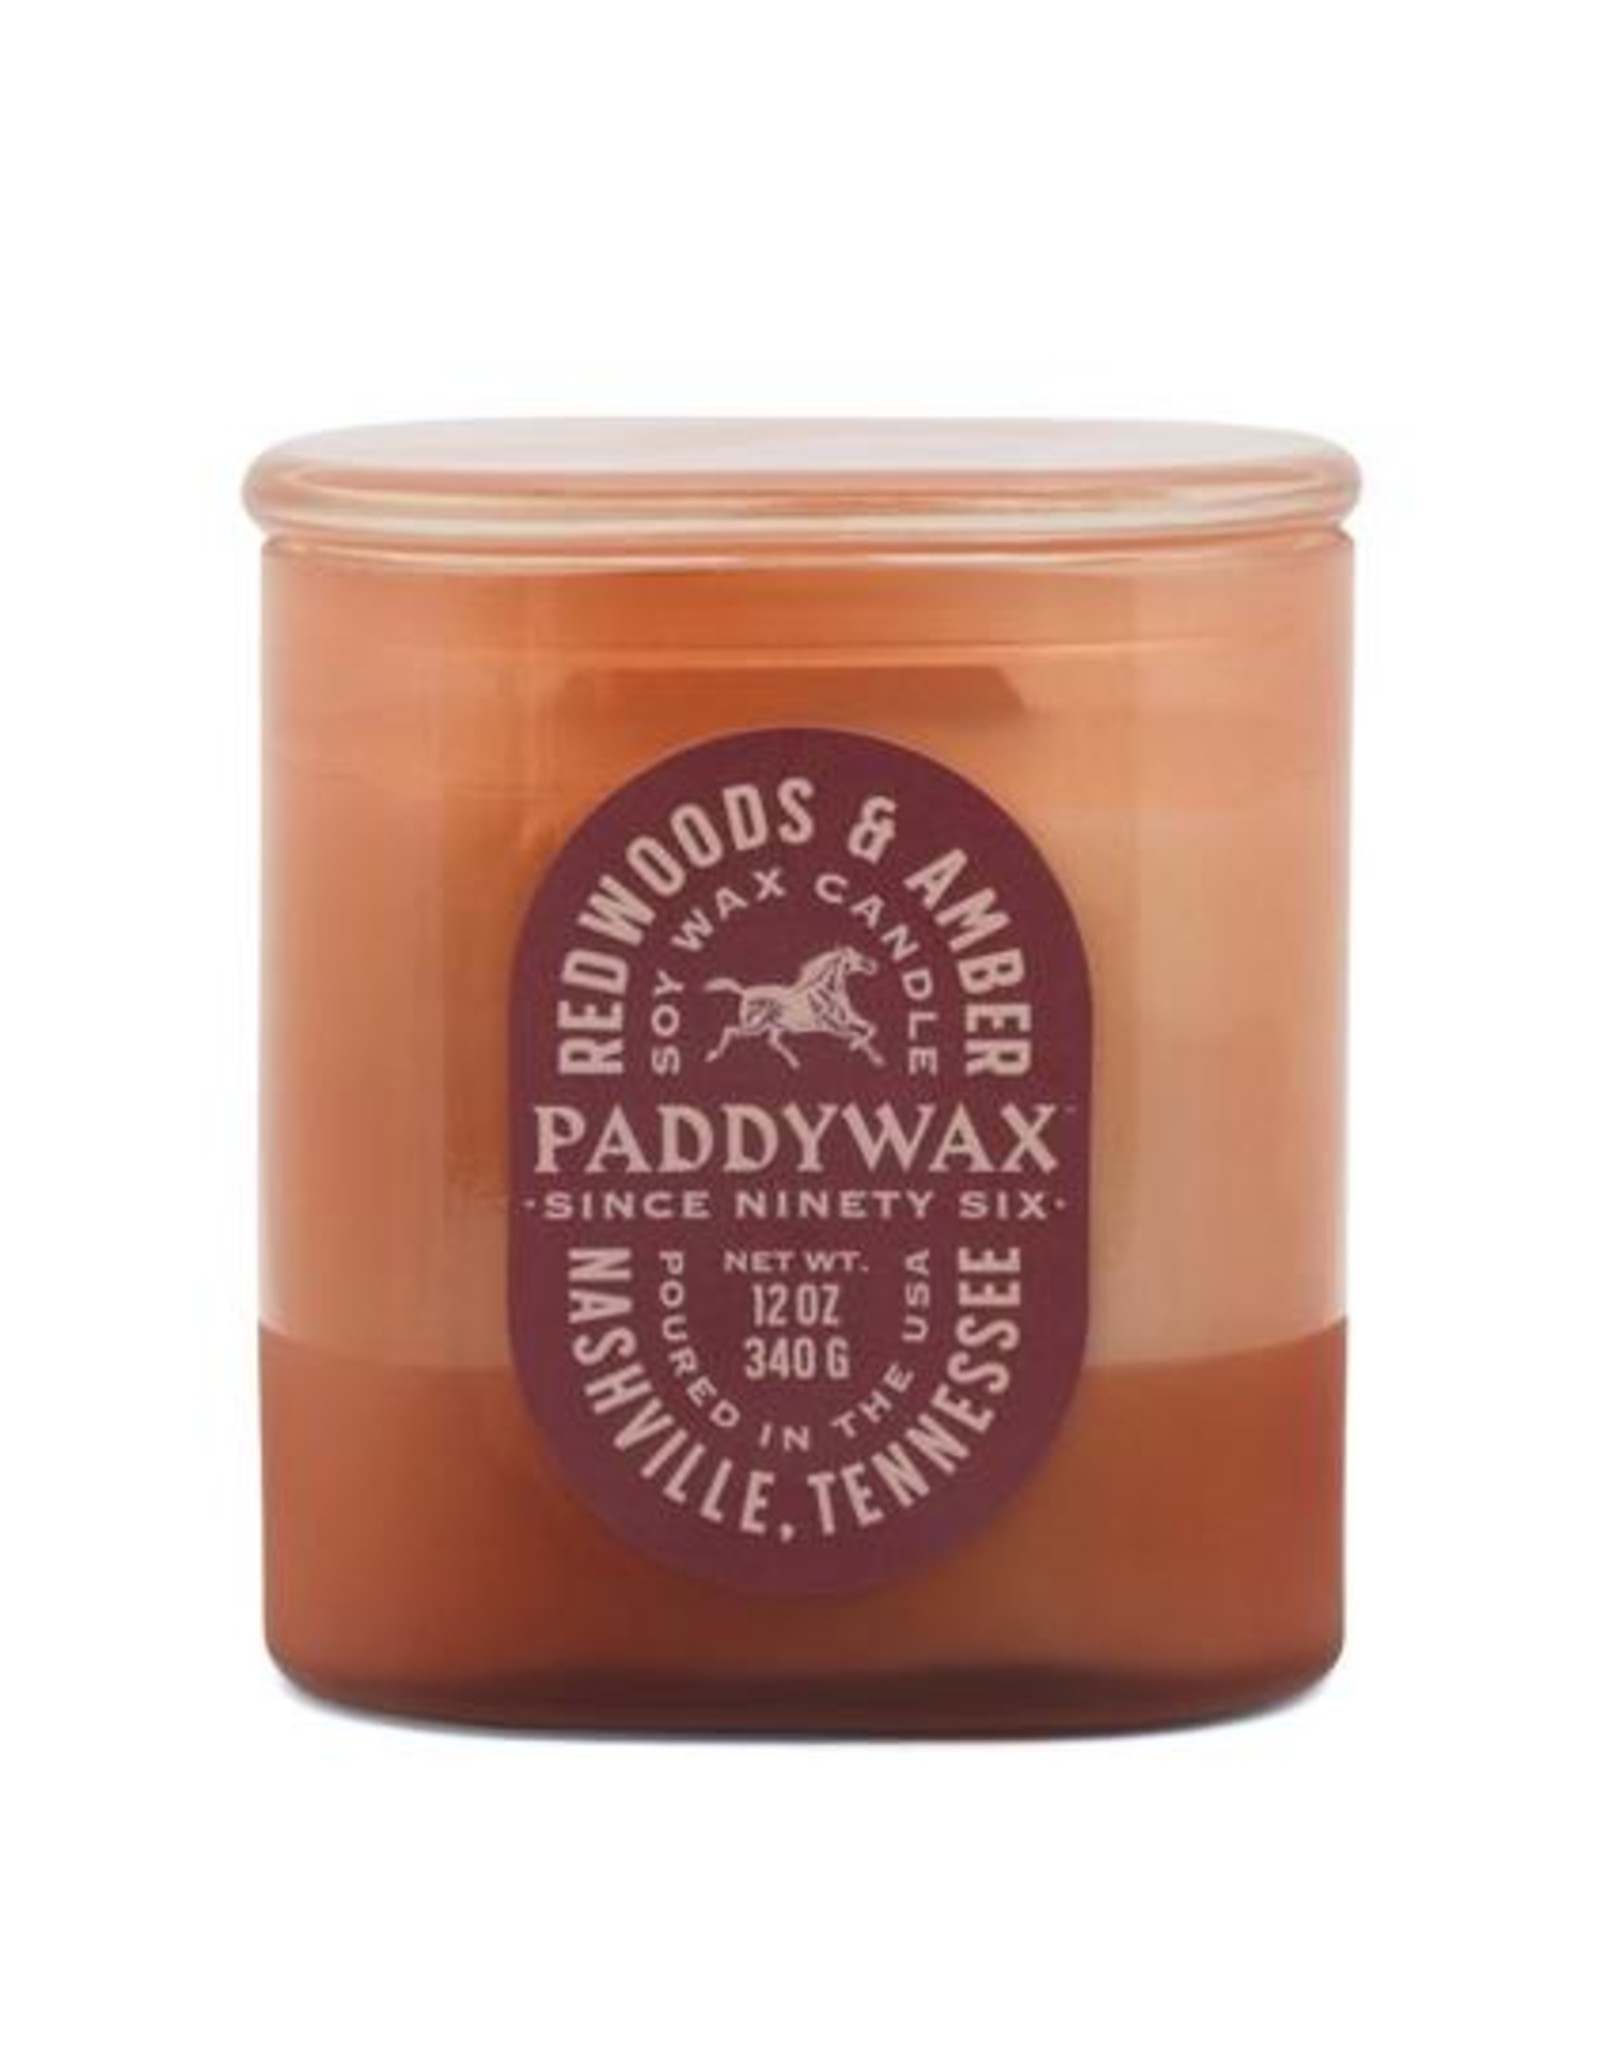 Paddywax Vista 12oz. Redwoods & Amber Candle